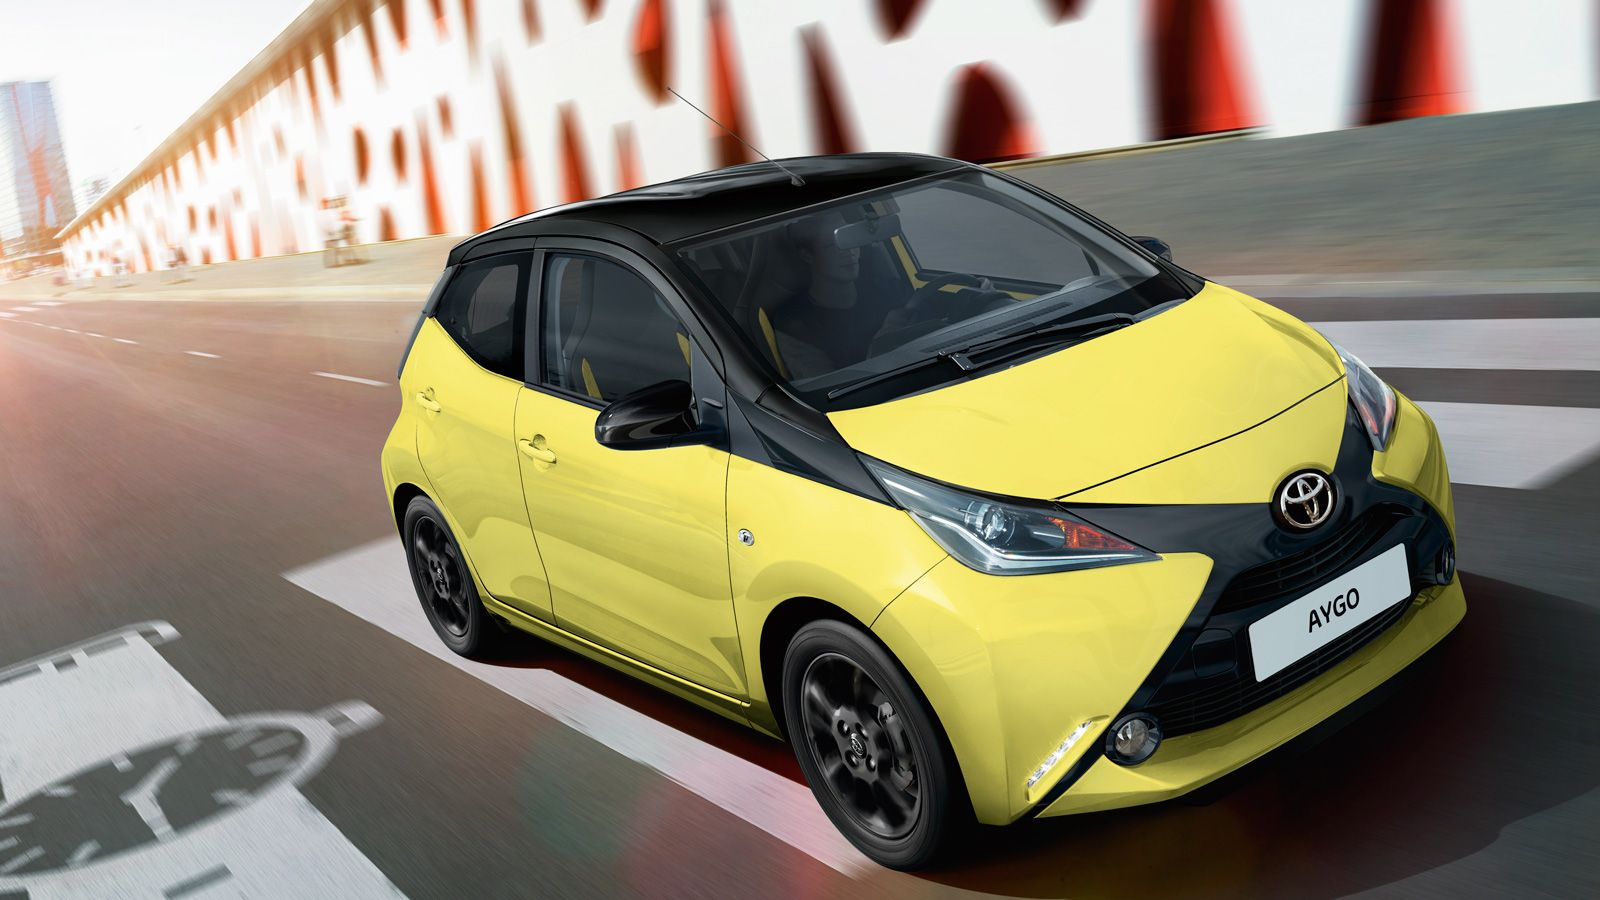 Aygo Small Cars City Cars Limited Edition Yellow Fizz Leicester Loughborough Farmer Carlisle Toyota Toyota Uk Toyota Aygo X Cite Toyota